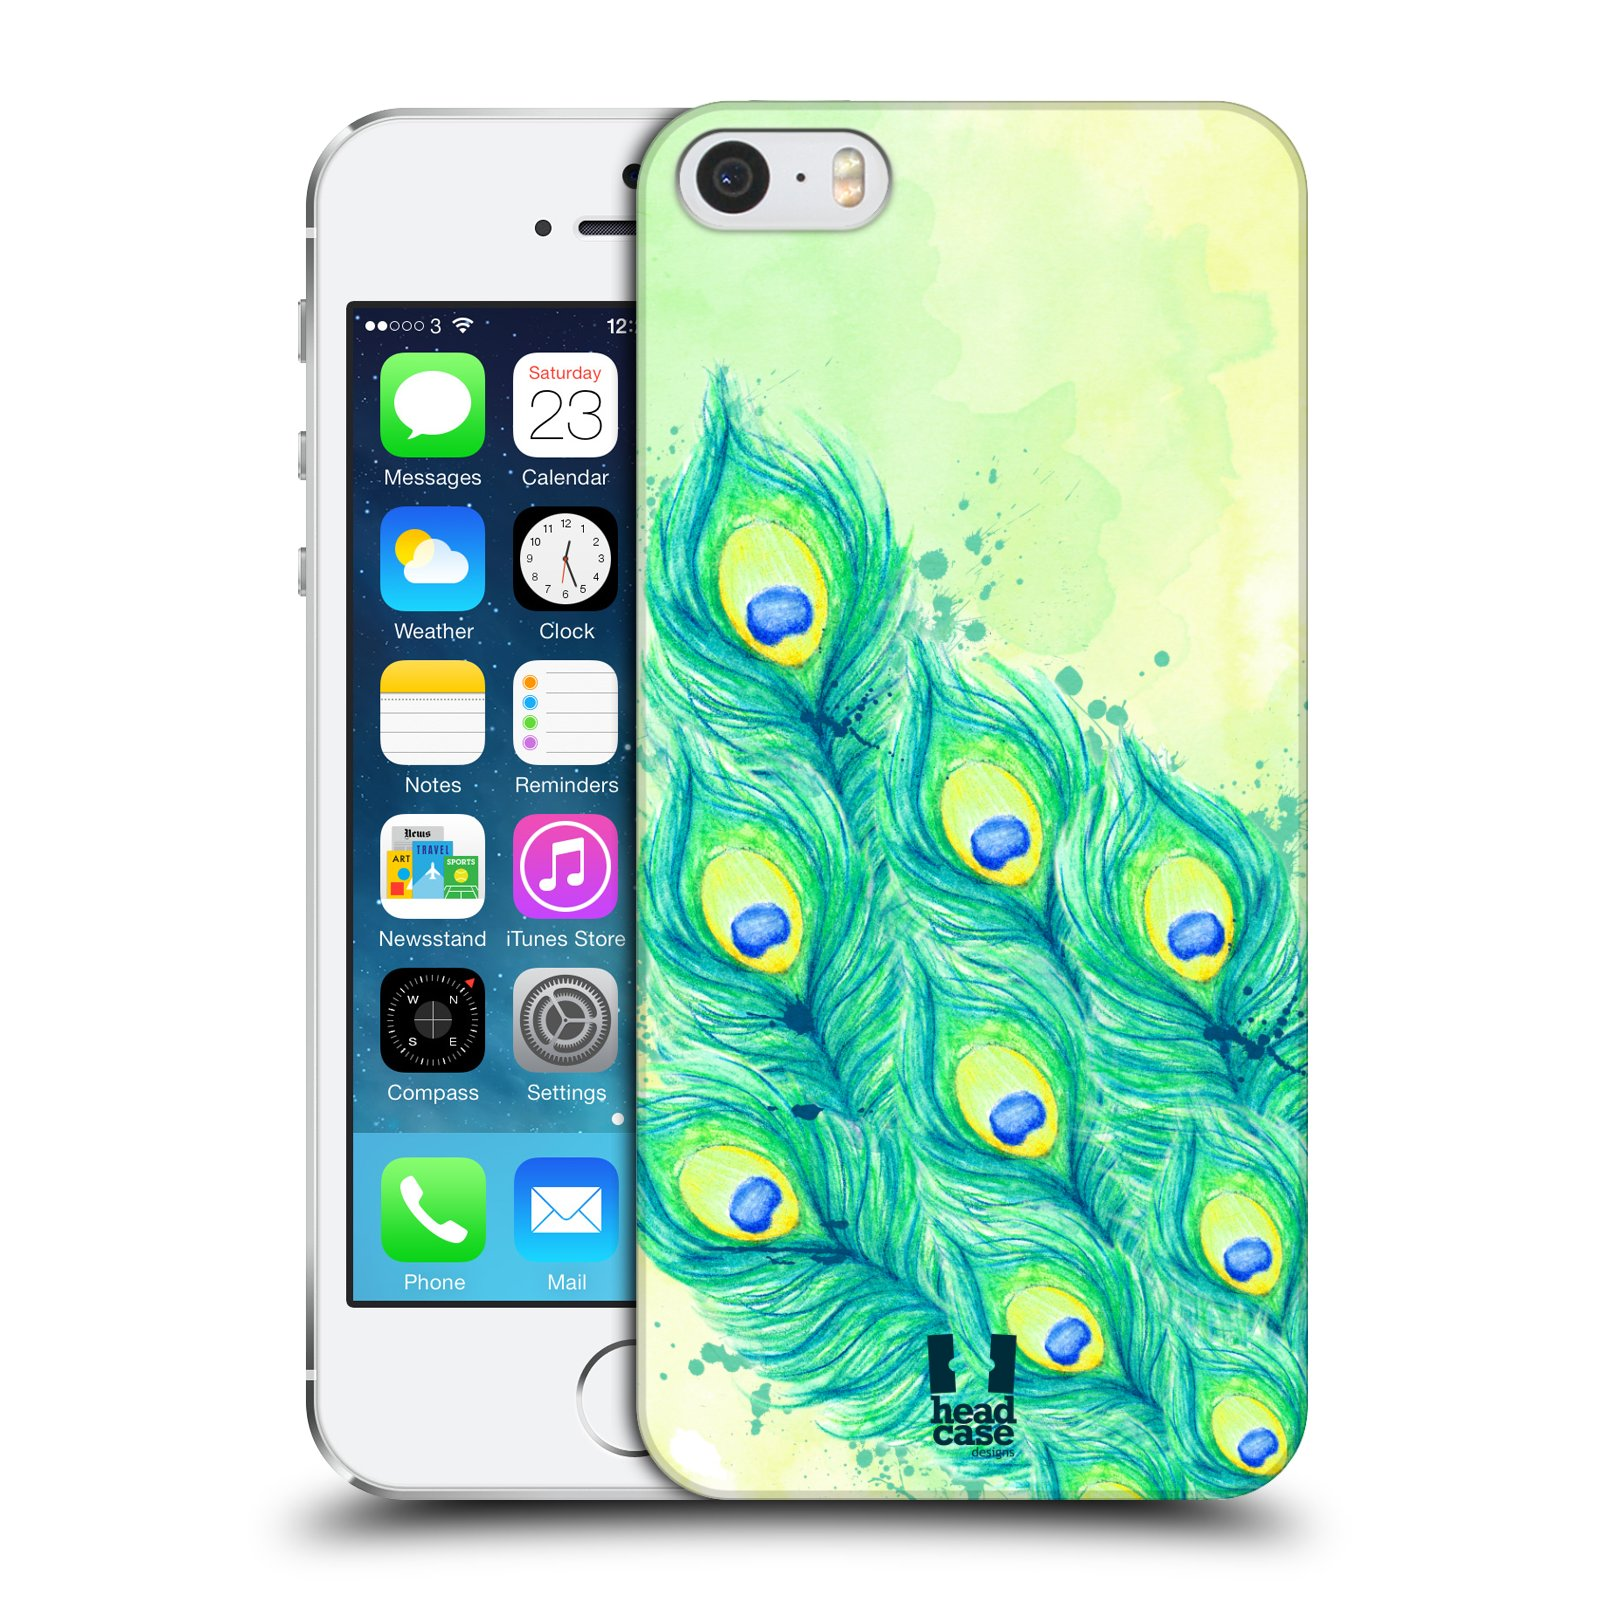 HEAD CASE DESIGNS PEACOCK FEATHERS CASE COVER FOR APPLE iPHONE 5 5S